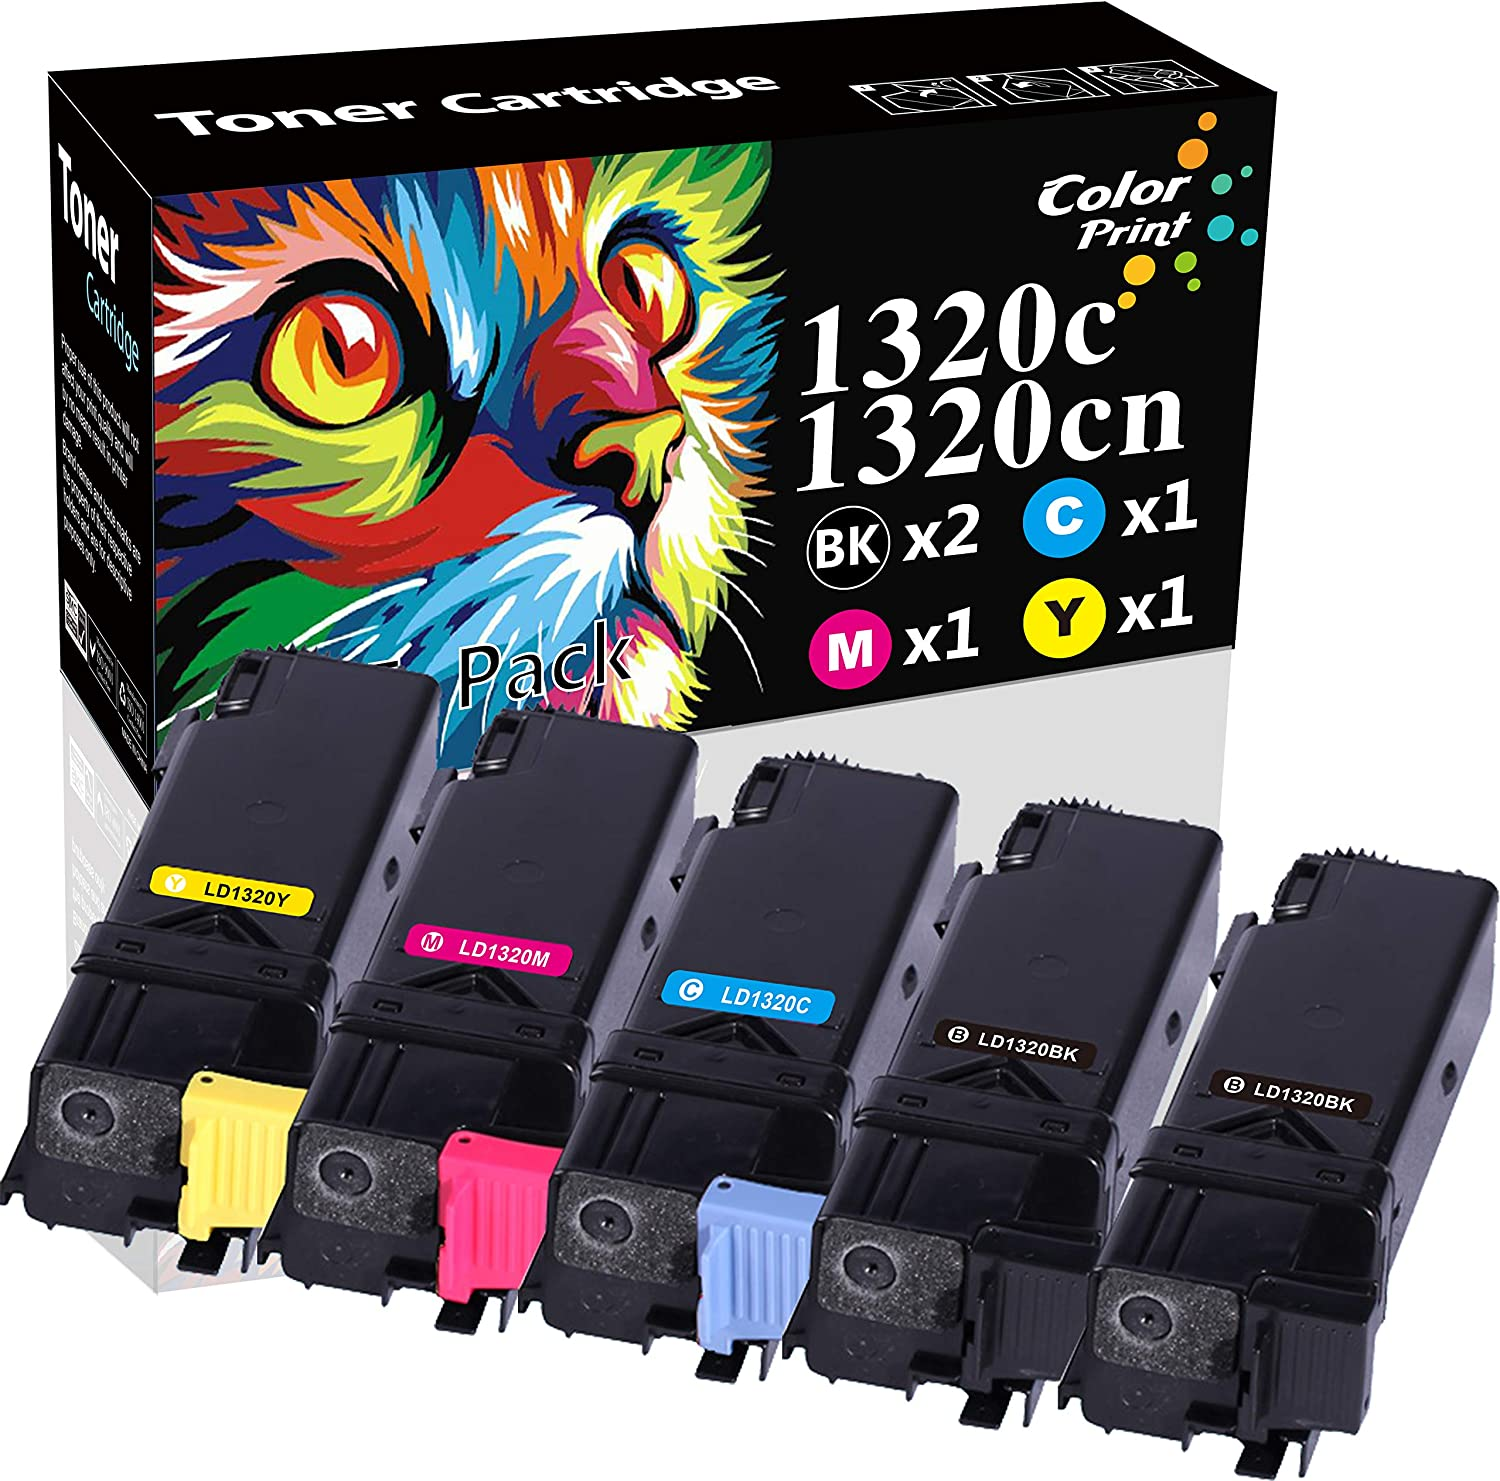 (5-Pack, 2X Black, Cyan, Magenta, Yellow) ColorPrint Compatible Dell 1320c Toner Cartridge Used for Dell Color Laser 1320 Black KU052 Cyan KU053 Yellow KU054 Magenta KU055 Printer